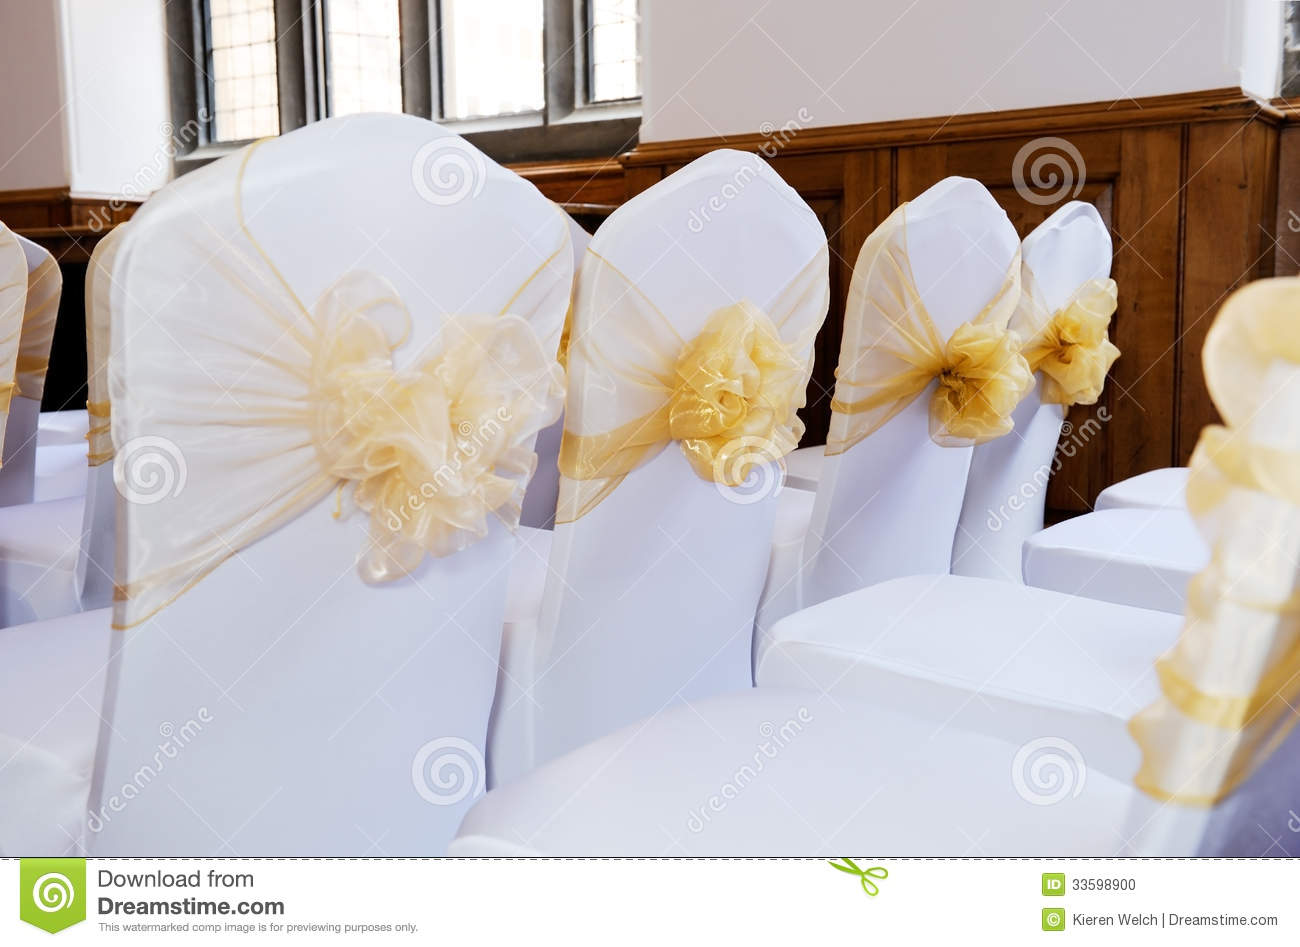 chair covers wedding yorkshire small desk chairs stock photo image 33598900